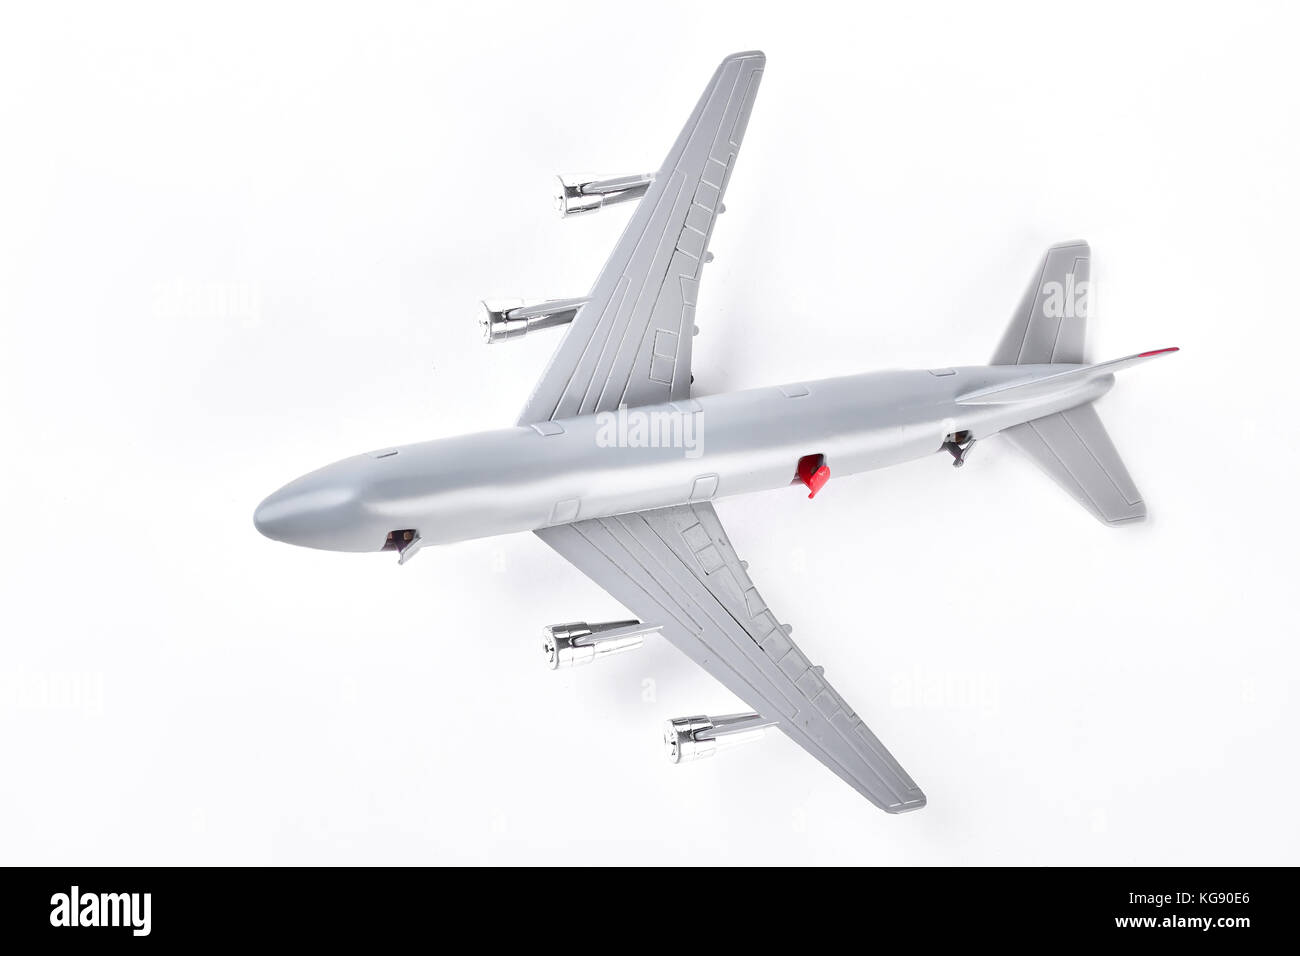 A close up shot of a diecast model plane. - Stock Image